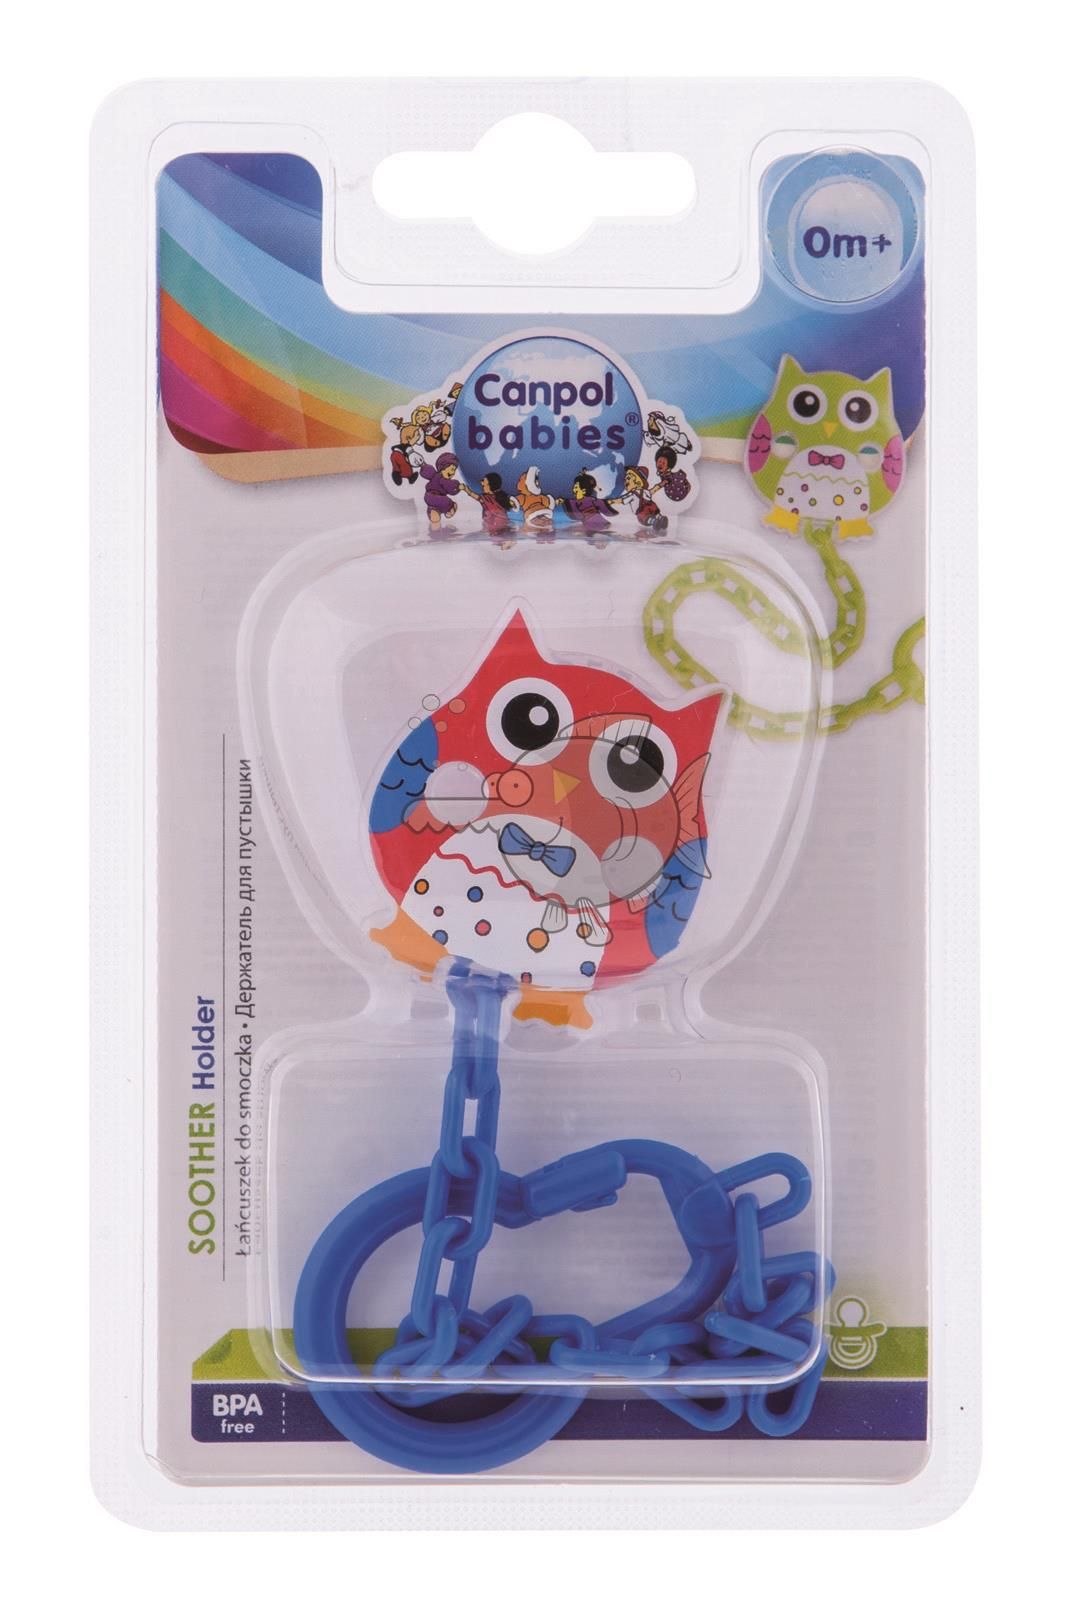 Baby Rosa Pipi Pacifier Soother Soother Dummy Clip Chain Holder Owl Strap